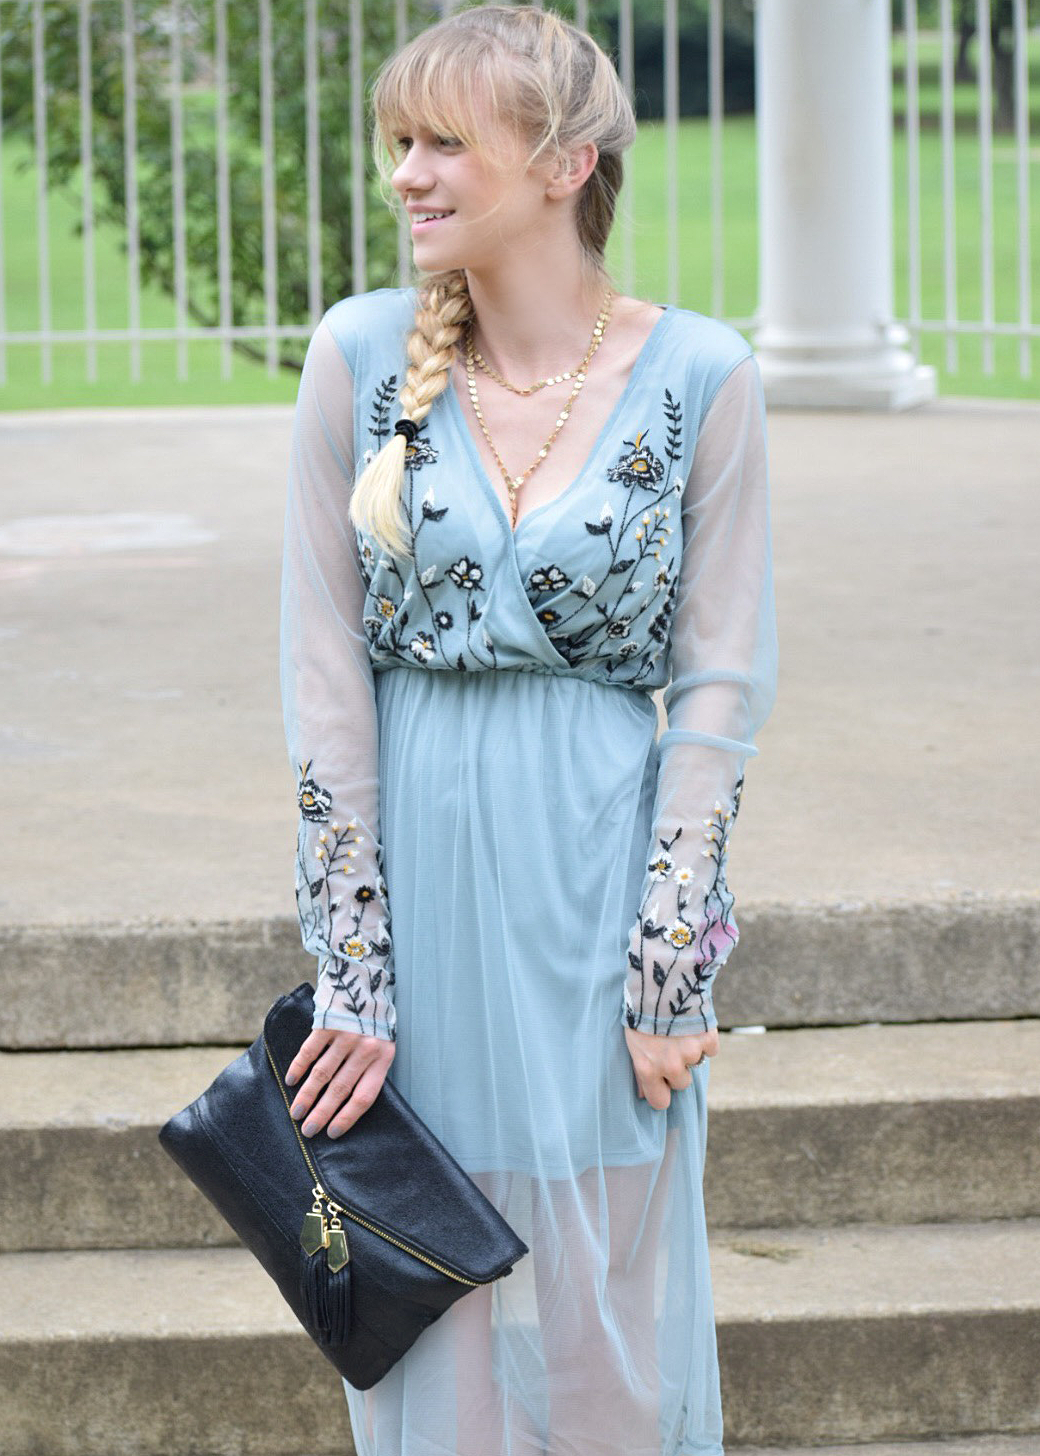 Target mesh and embroidered dress